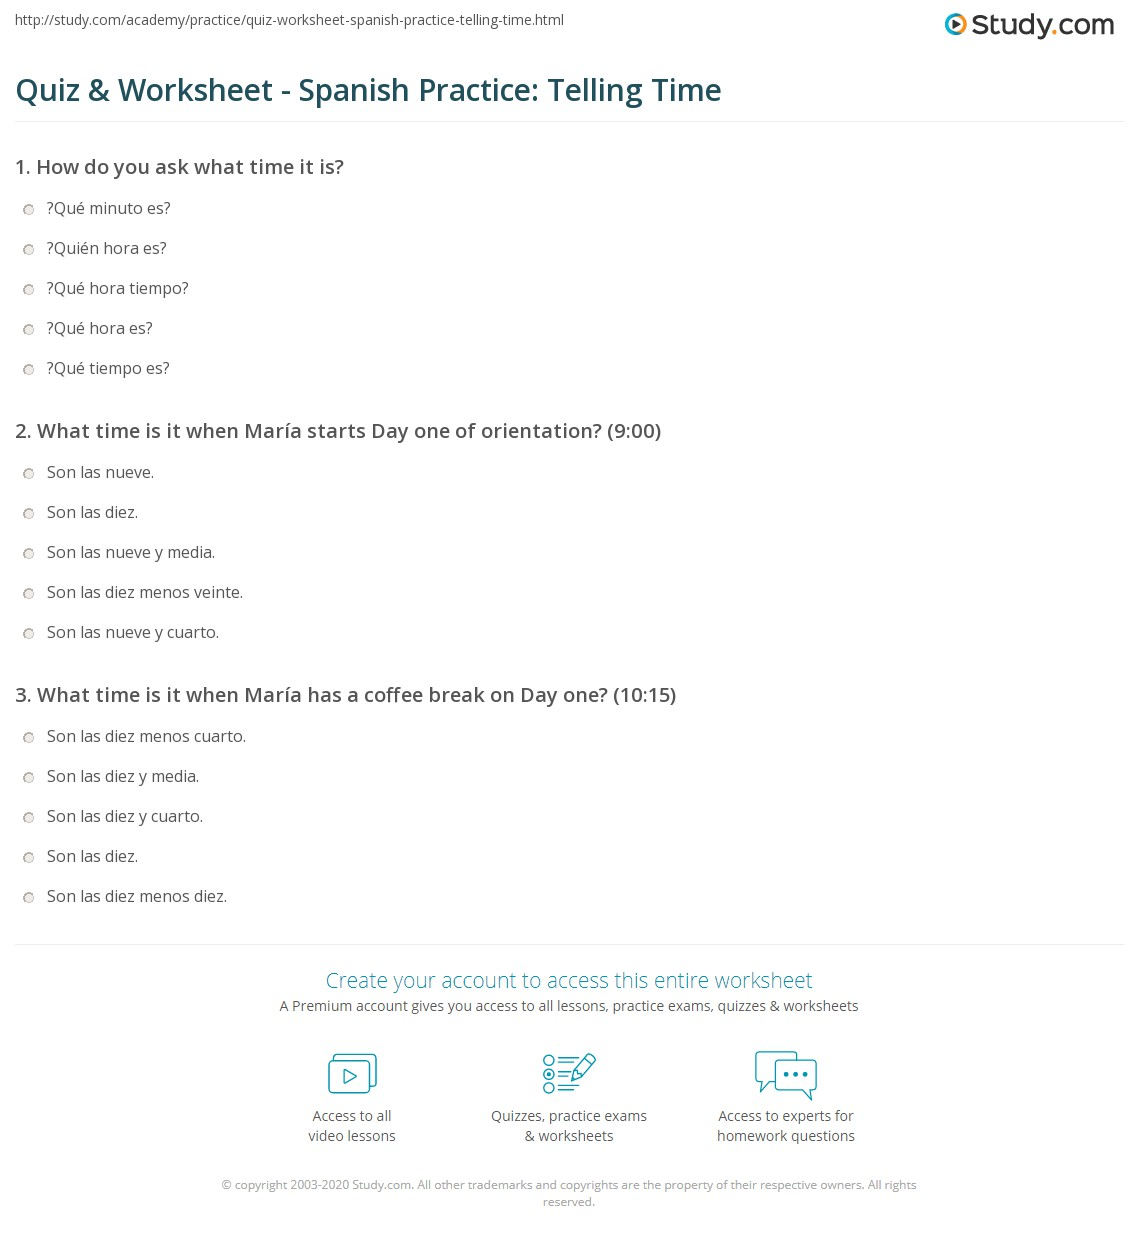 Quiz & Worksheet - Spanish Practice: Telling Time | Study.com